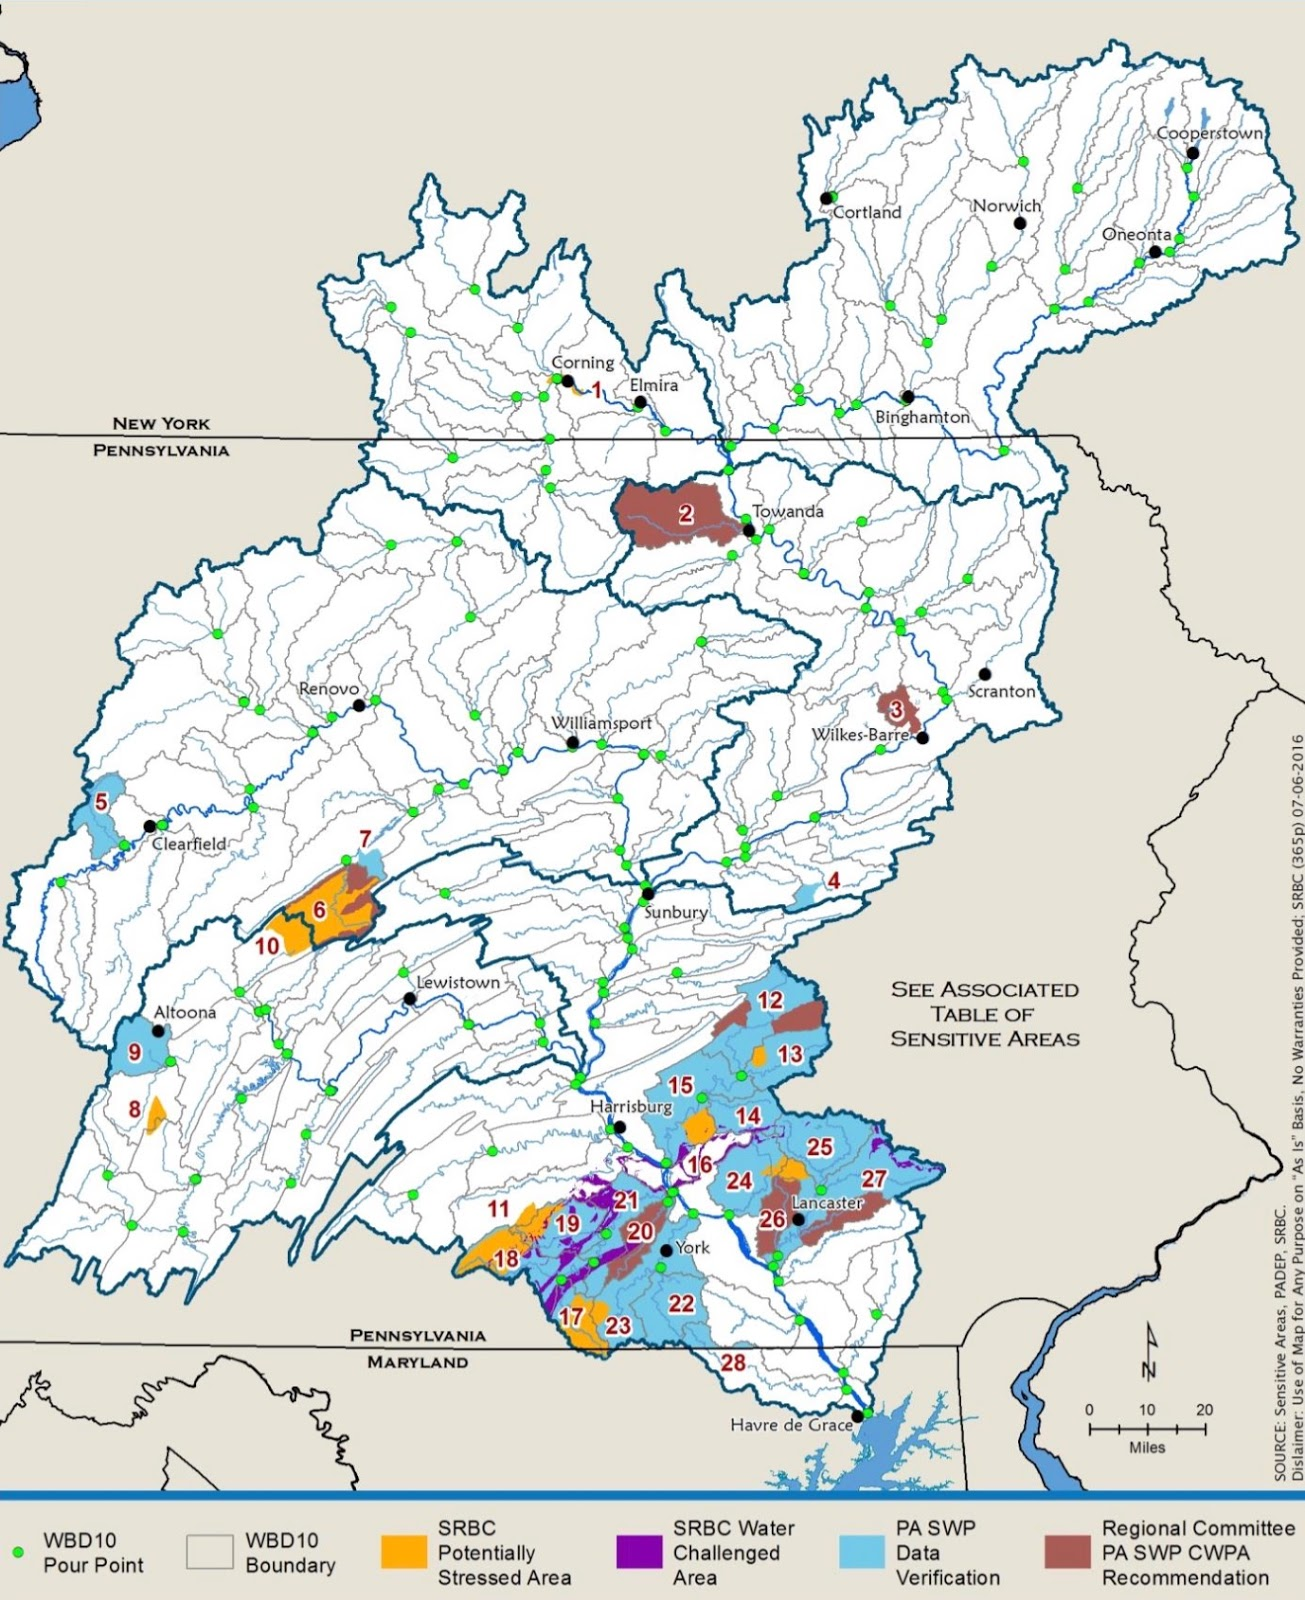 PA Environment Digest Blog: Susquehanna River Basin Commission ... on shenandoah river map, chesapeake bay, sacramento river map, lake erie, pee dee river map, hudson river, ohio river, pawcatuck river map, missouri river, red river, allegheny river map, scioto river map, colorado river, mississippi river, monongahela river, james river, allegheny river, potomac river, columbia river map, snake river, city island, columbia river, connecticut river map, adirondack mountains, san joaquin river map, delaware water gap, roanoke river map, seneca river map, hudson river map, tombigbee river map, delaware river, saskatchewan river map, juniata river map, connecticut river, potomac river map, delaware river map, james river map, mohawk river map, tennessee river map,